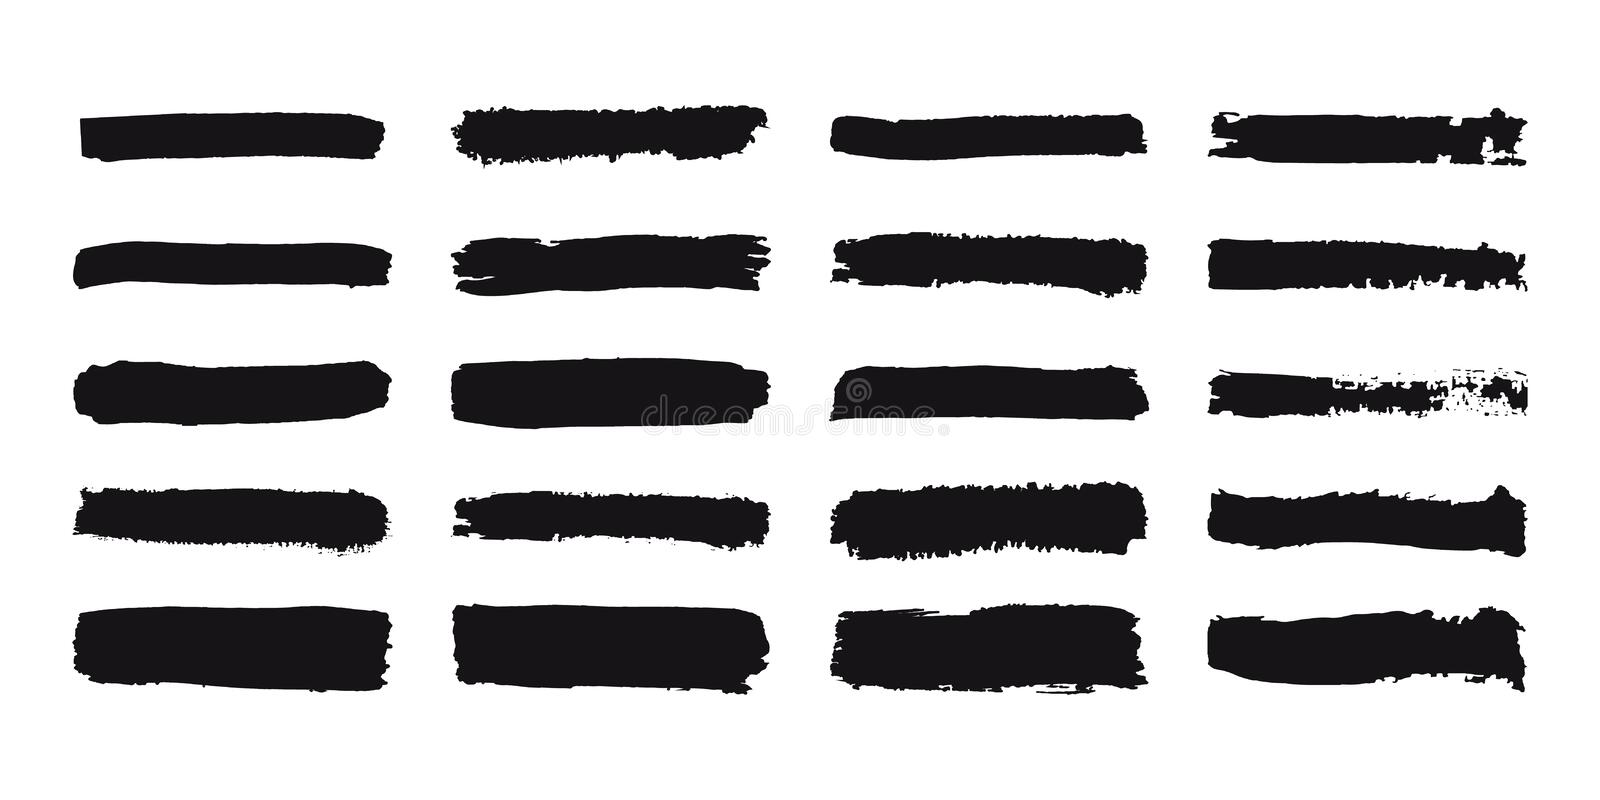 Collection of grunge brush strokes. Painted stripes set. Black ink hand drawn texture. Lines isolated on white background stock illustration